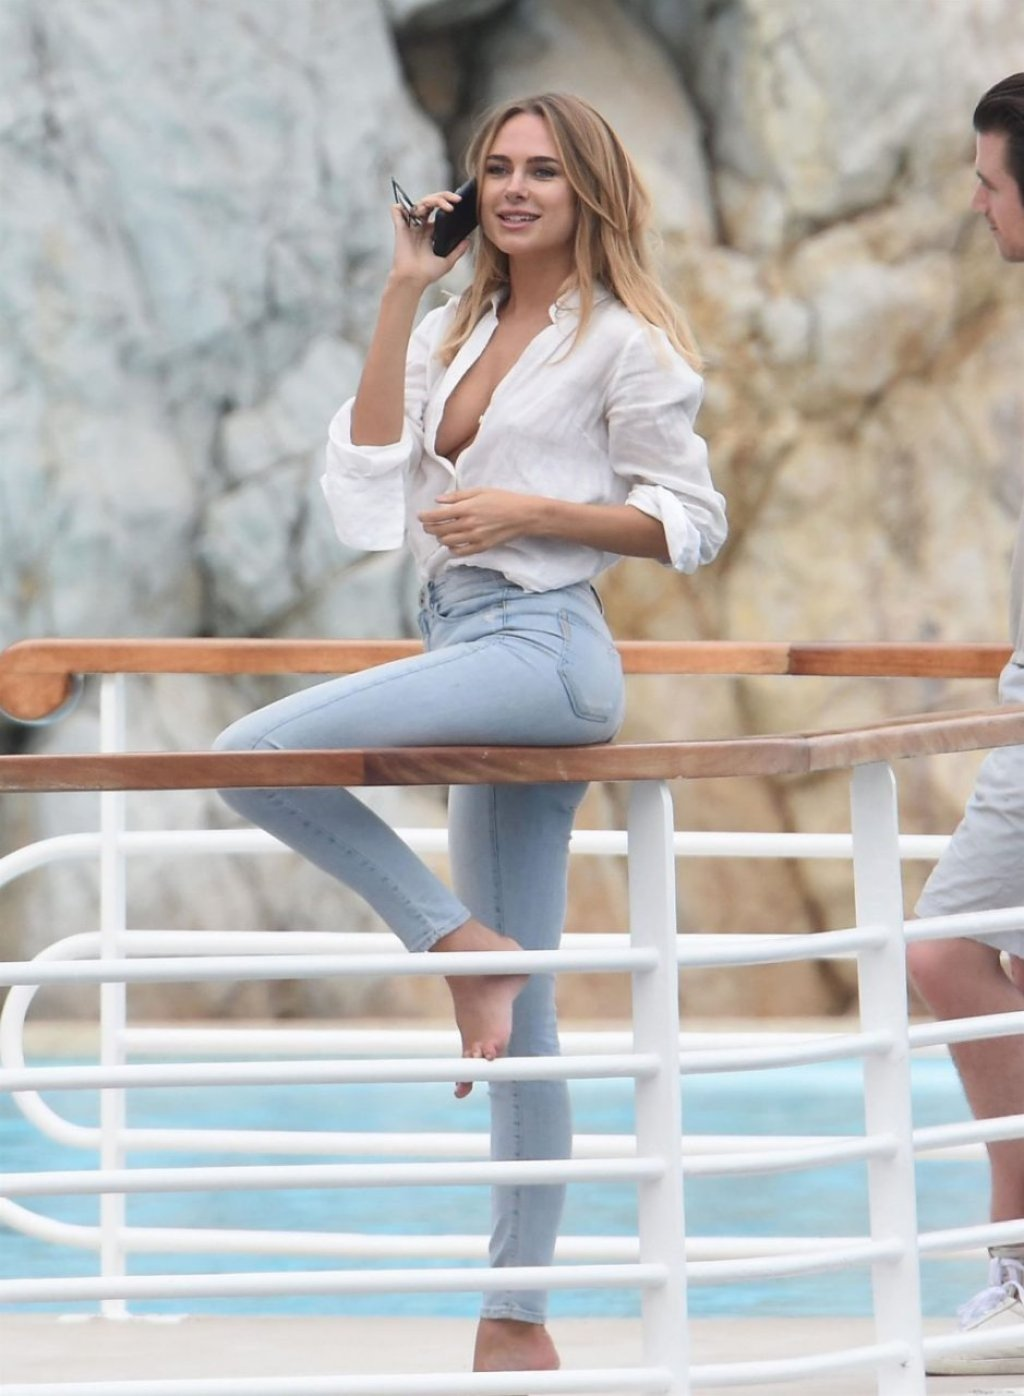 Kimberley Garner Braless (40 Photos)